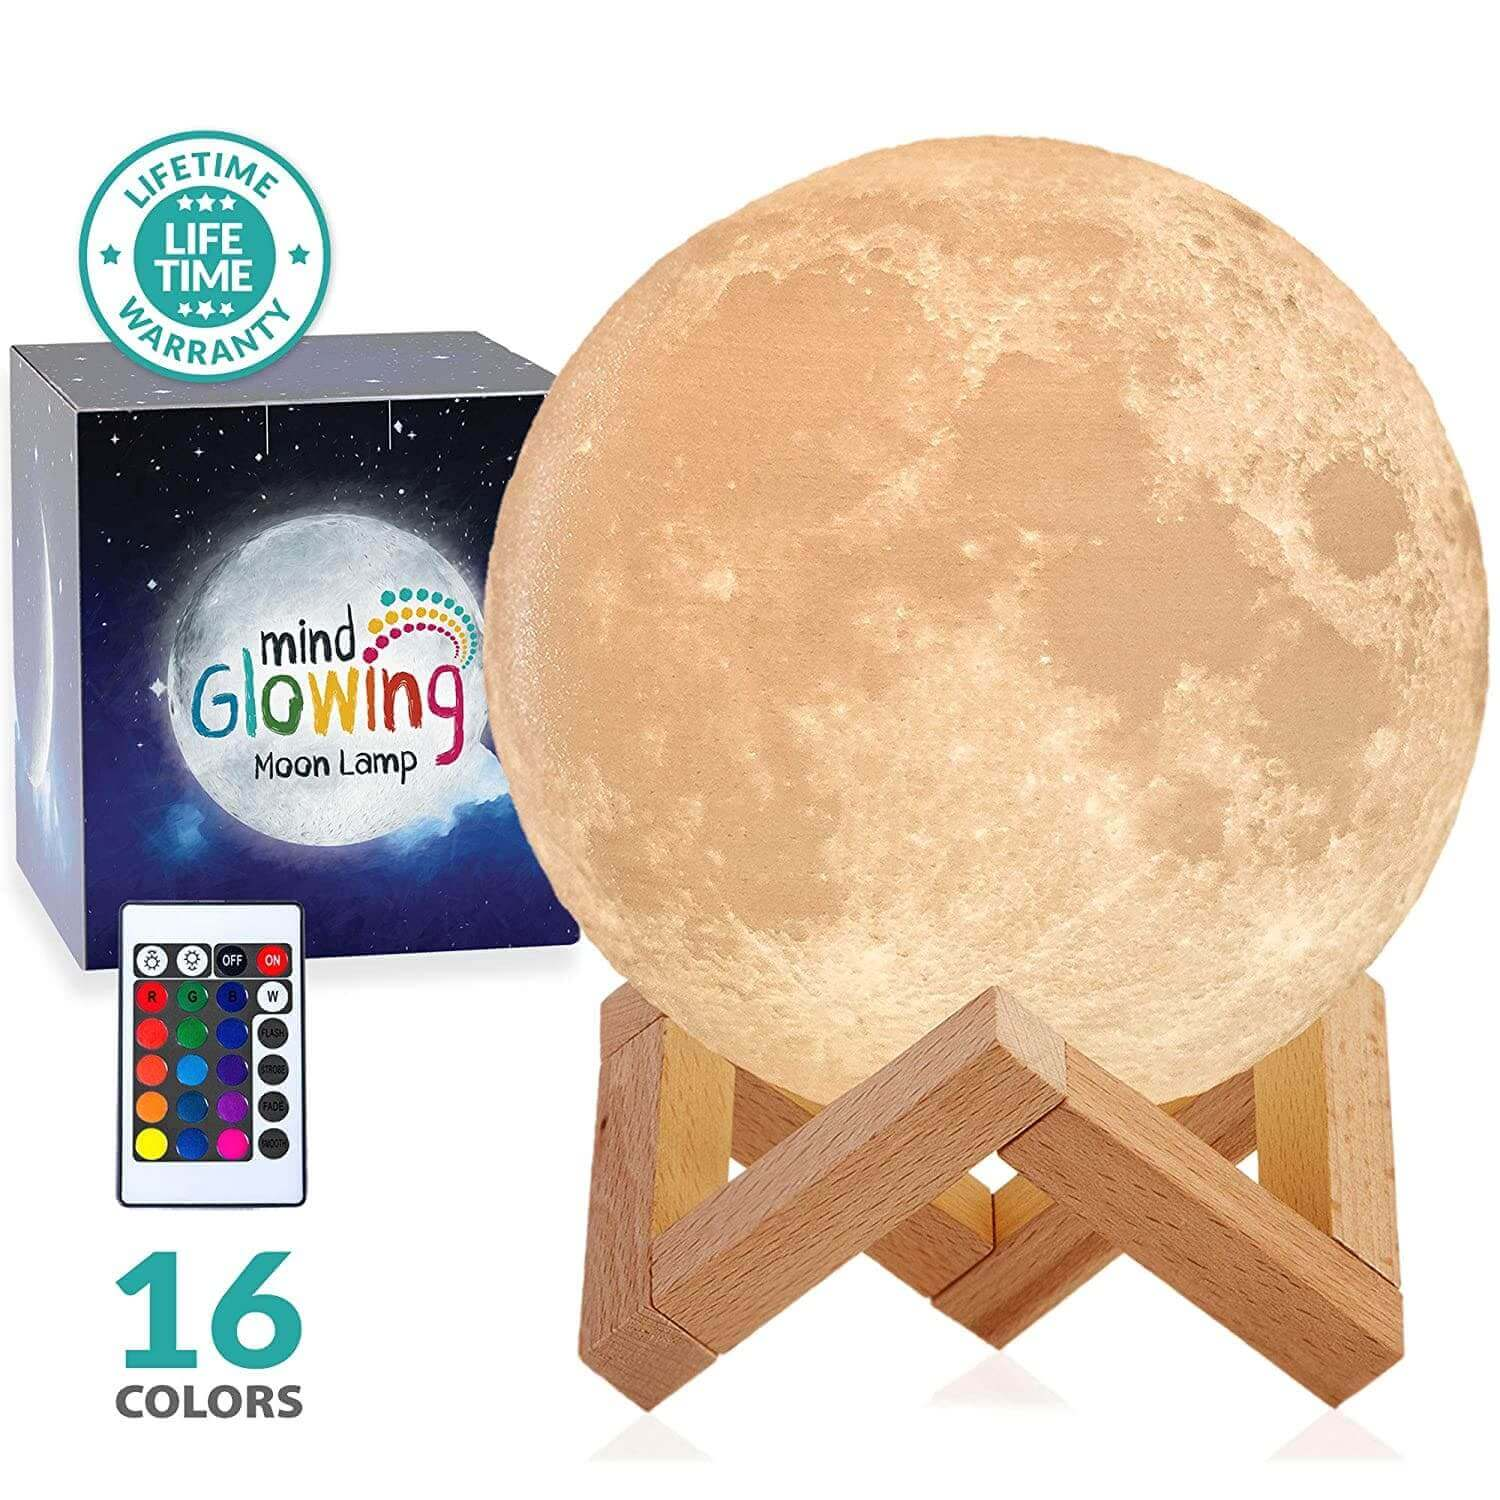 A lamp shaped like the moon on a wooden stand.